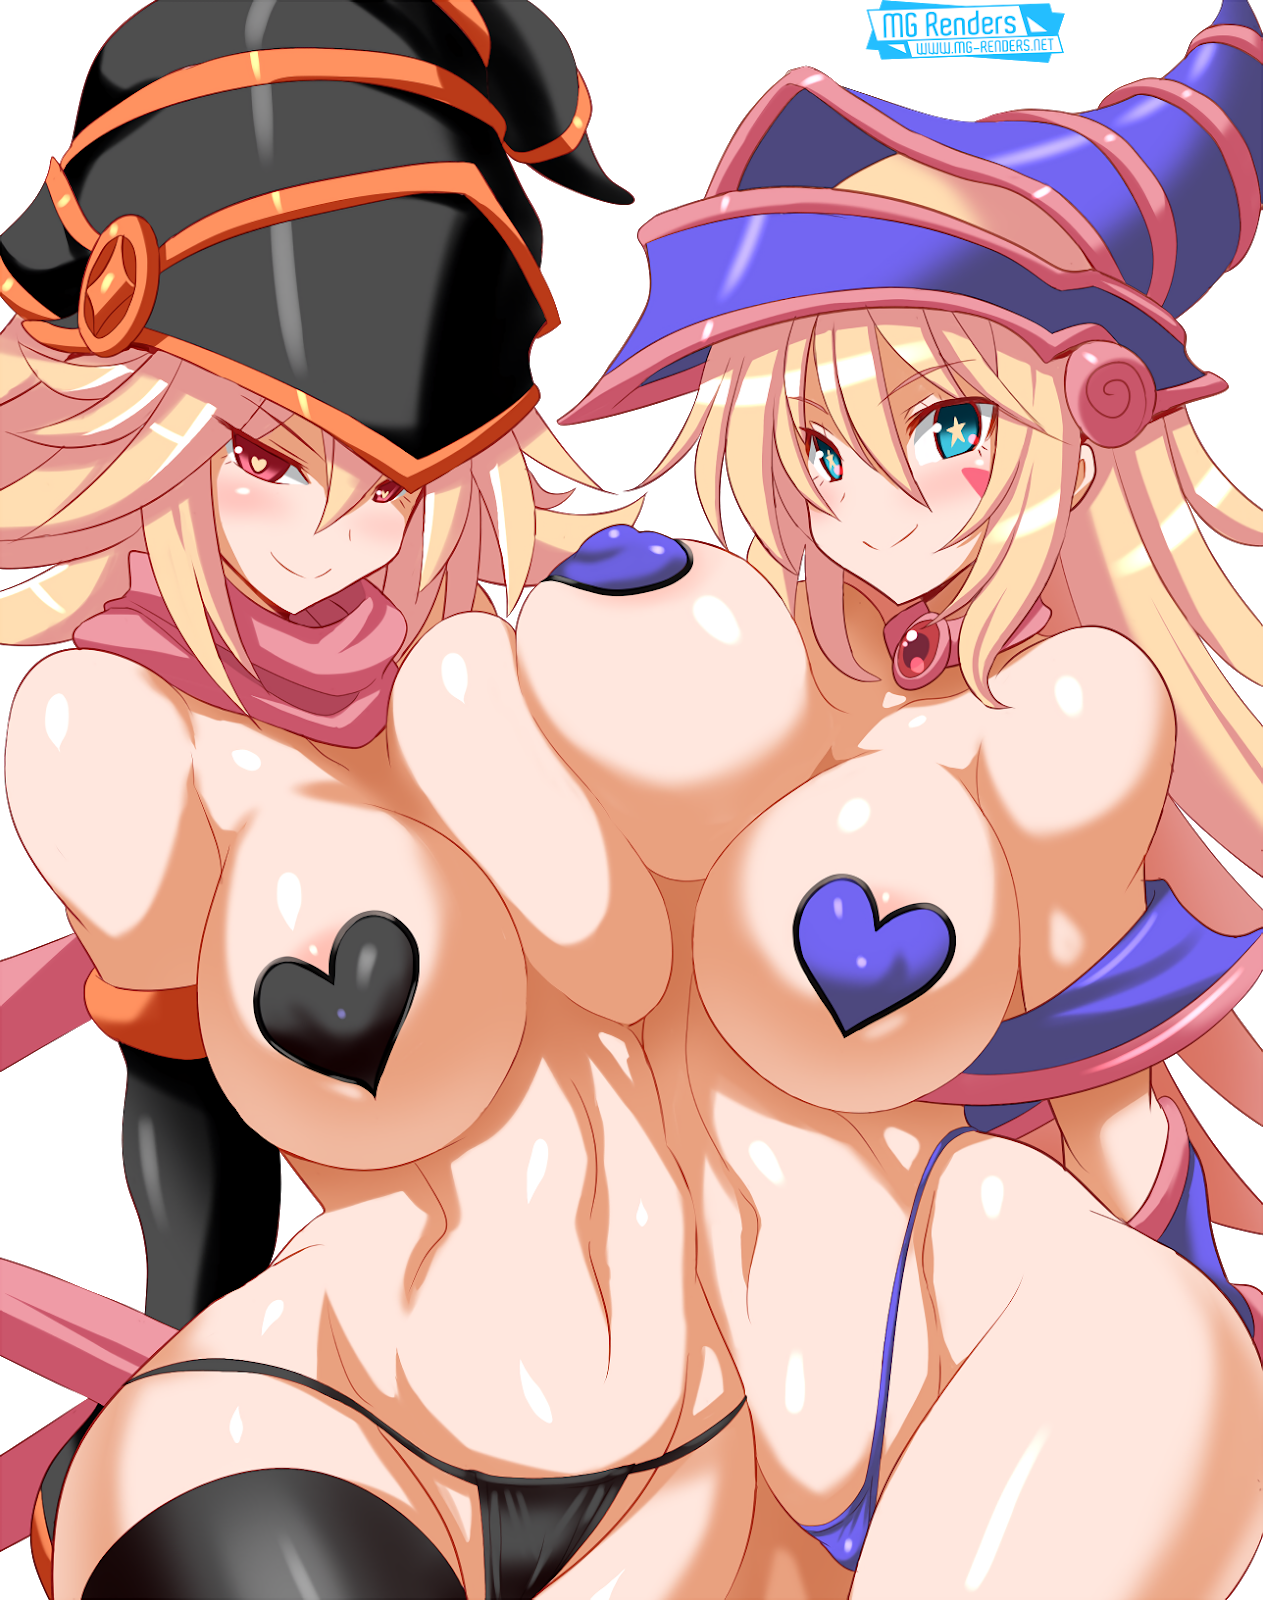 Tags: Anime, Render,  Bare shoulders,  Breasts press,  Breasts to breasts,  Dark Magician Girl,  Gagaga Girl,  Huge Breasts,  Konno Tohiro,  Micro Bikini,  Navel,  No bra,  Pasties,  Yu-Gi-Oh,  Yuri, PNG, Image, Picture